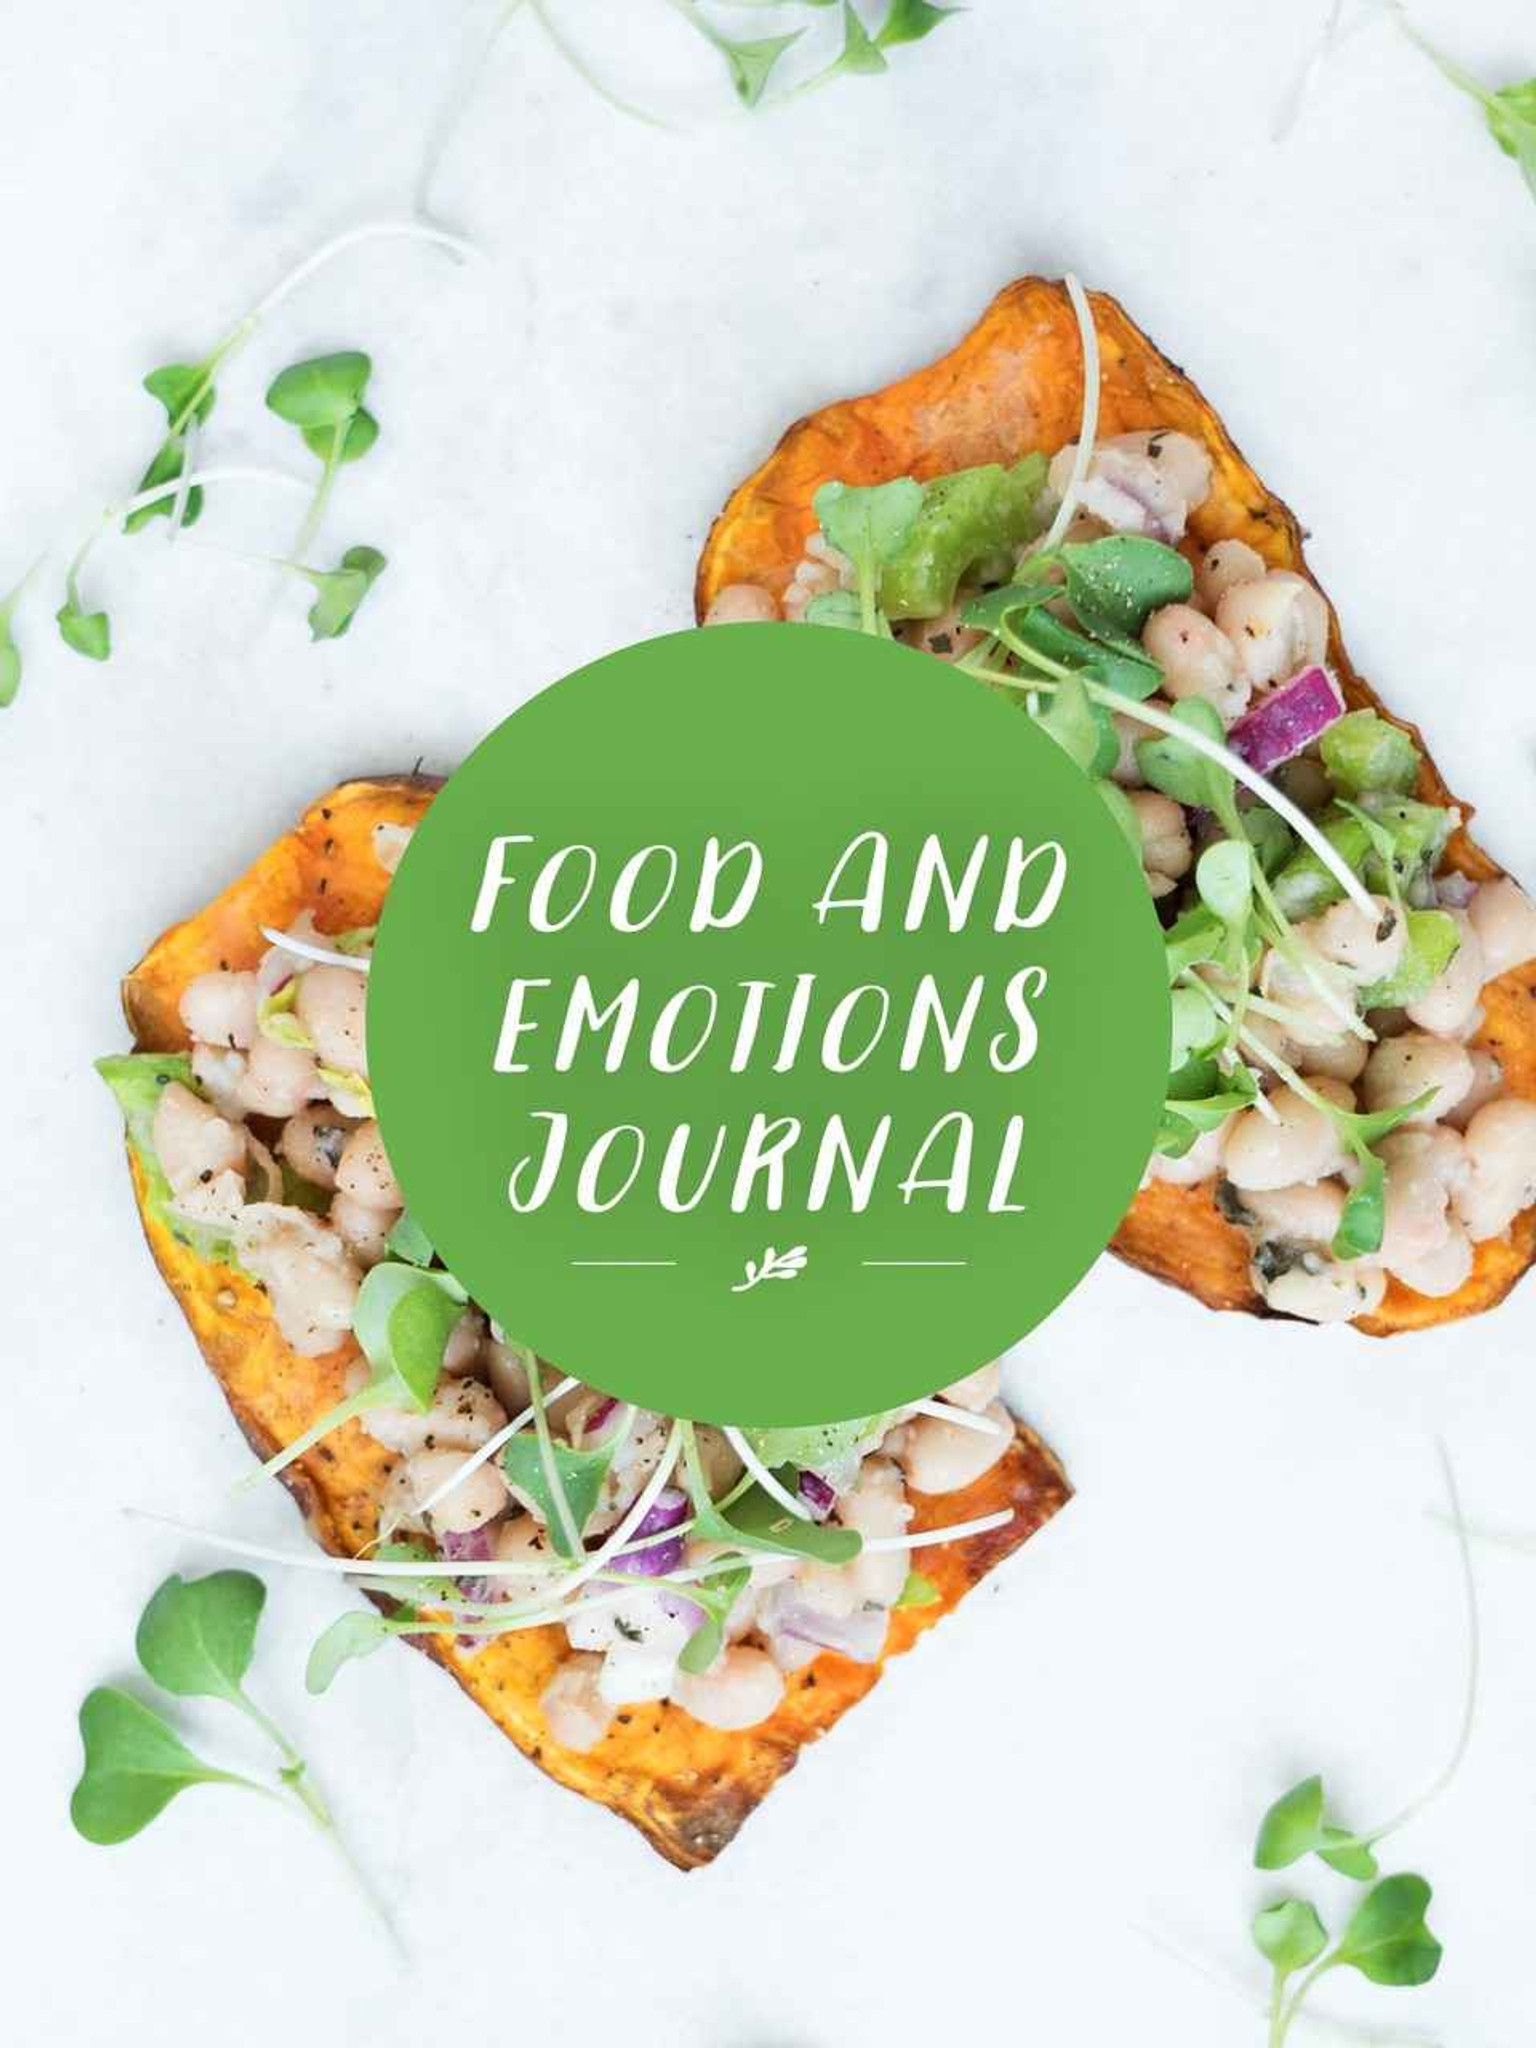 Joyous Health Food and Emotions Journal